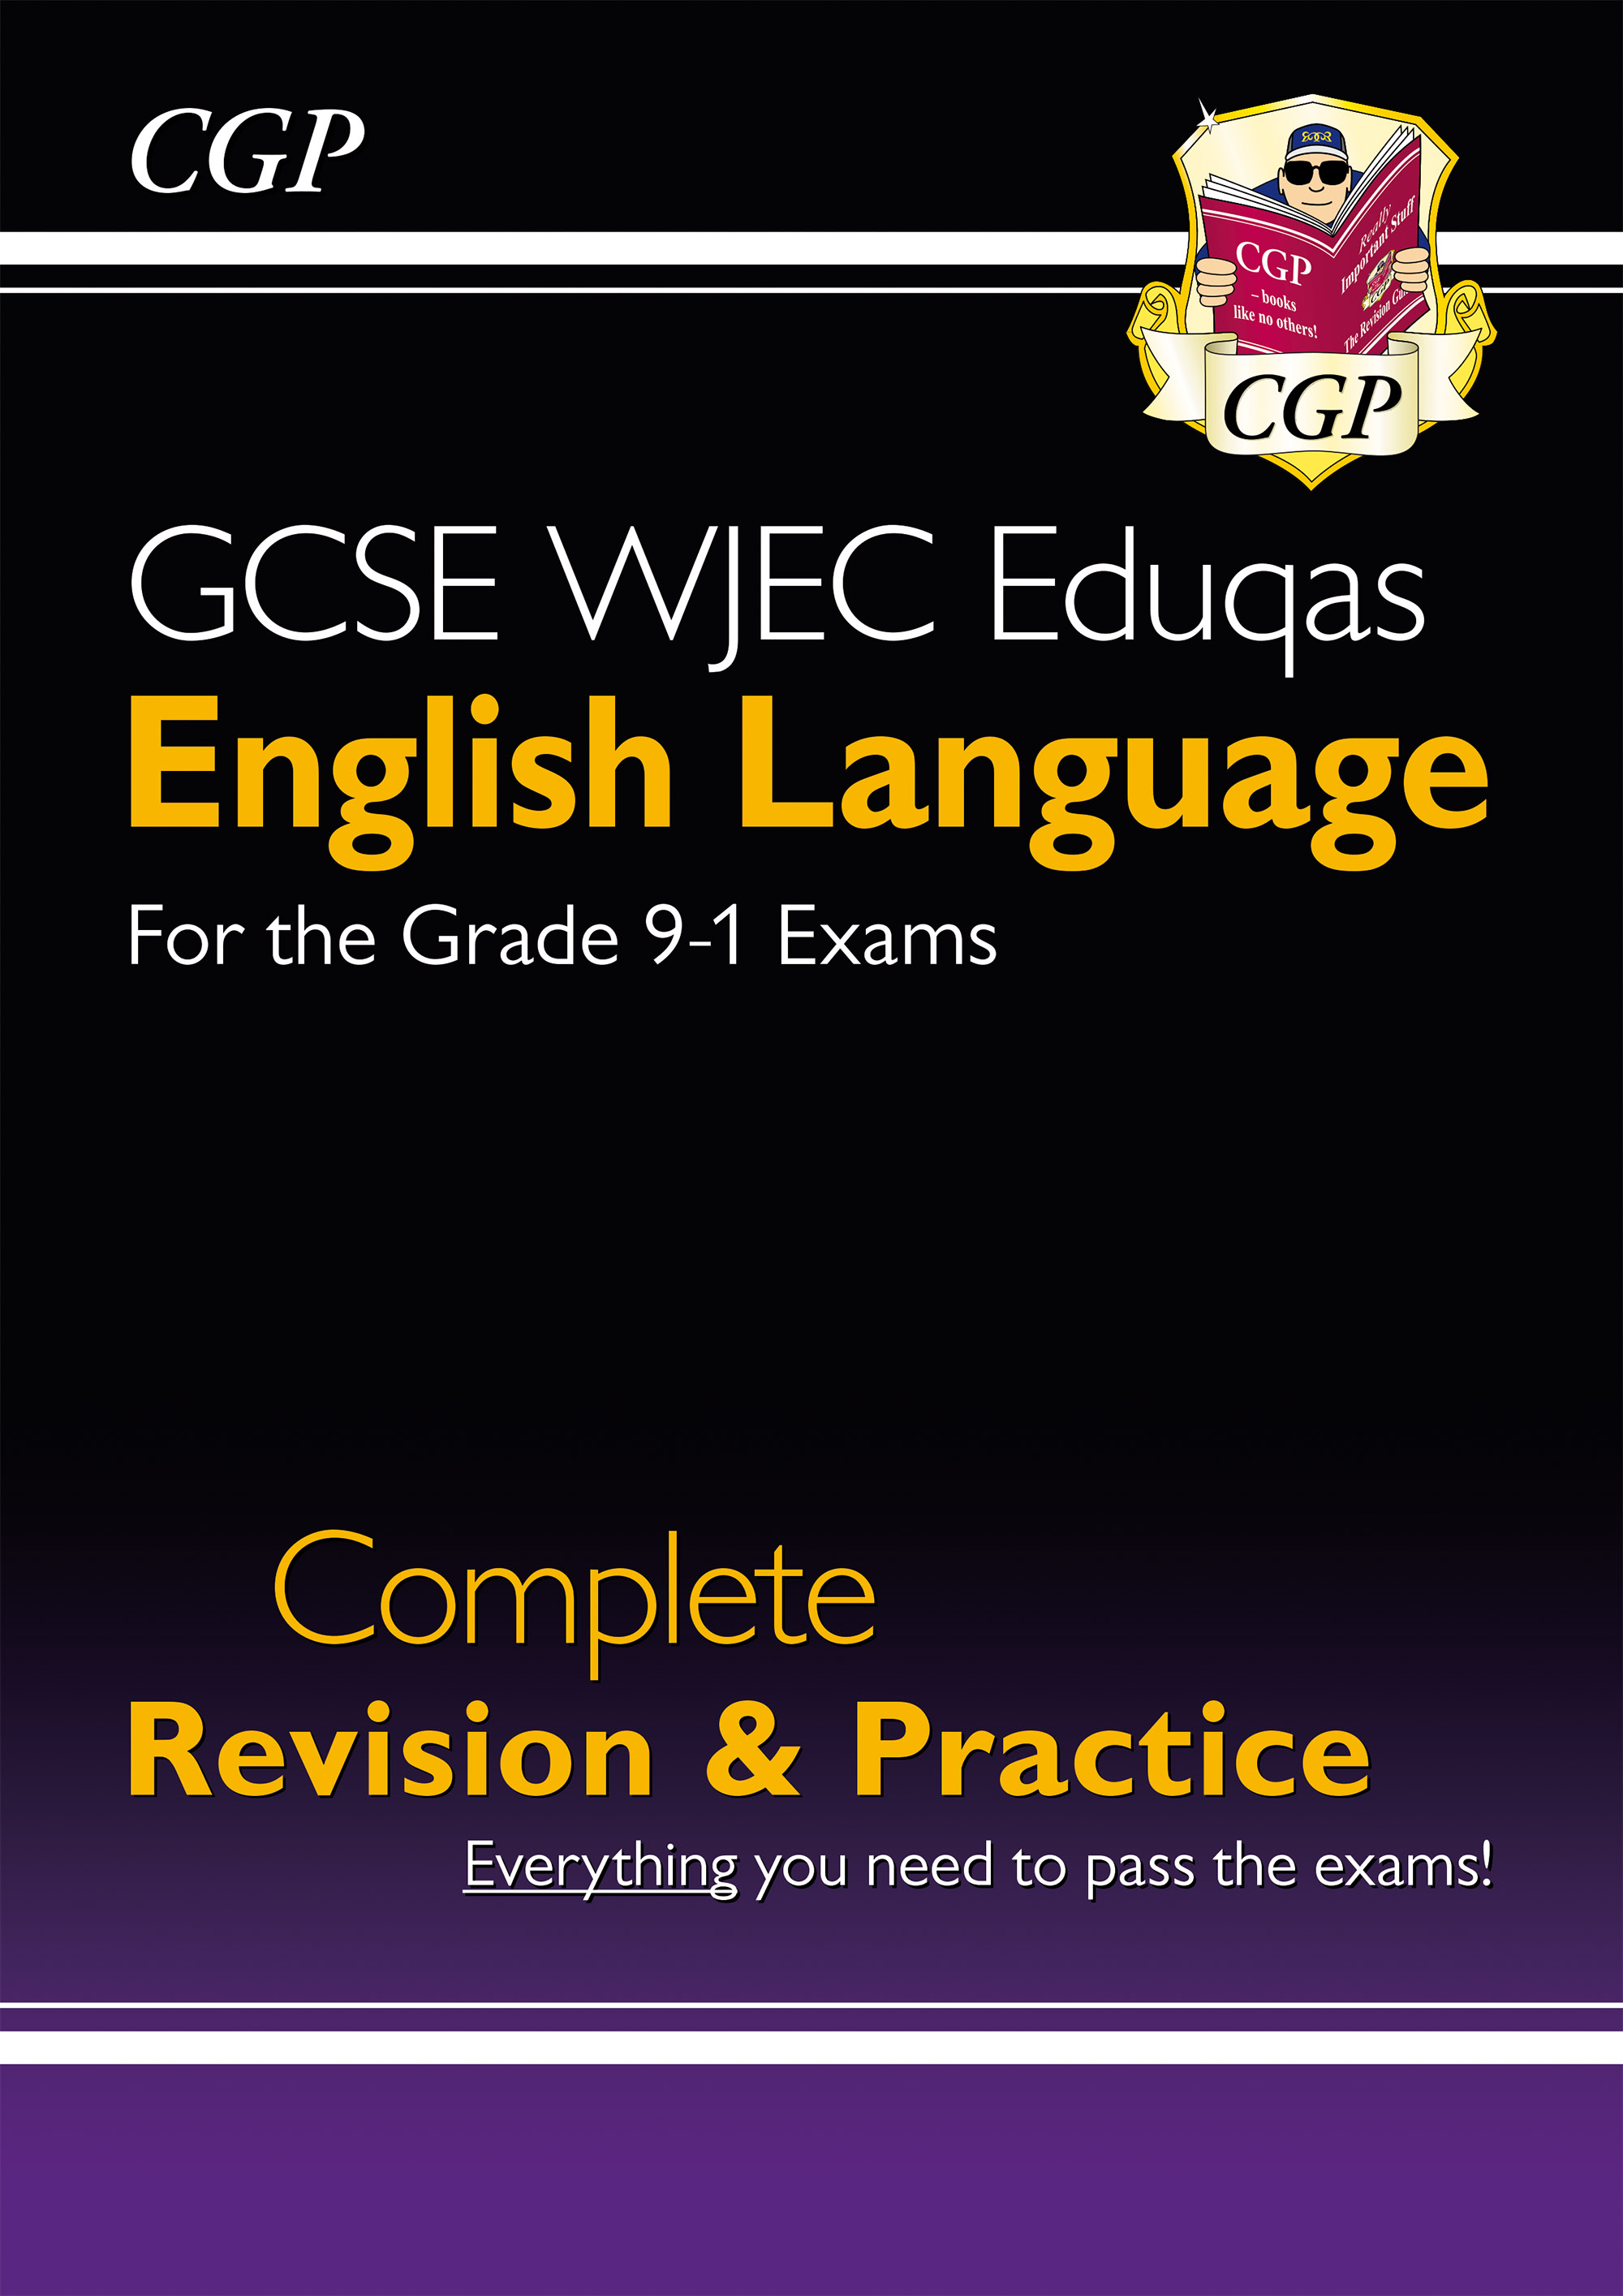 ENWS41DK - New Grade 9-1 GCSE English Language WJEC Eduqas Complete Revision & Practice